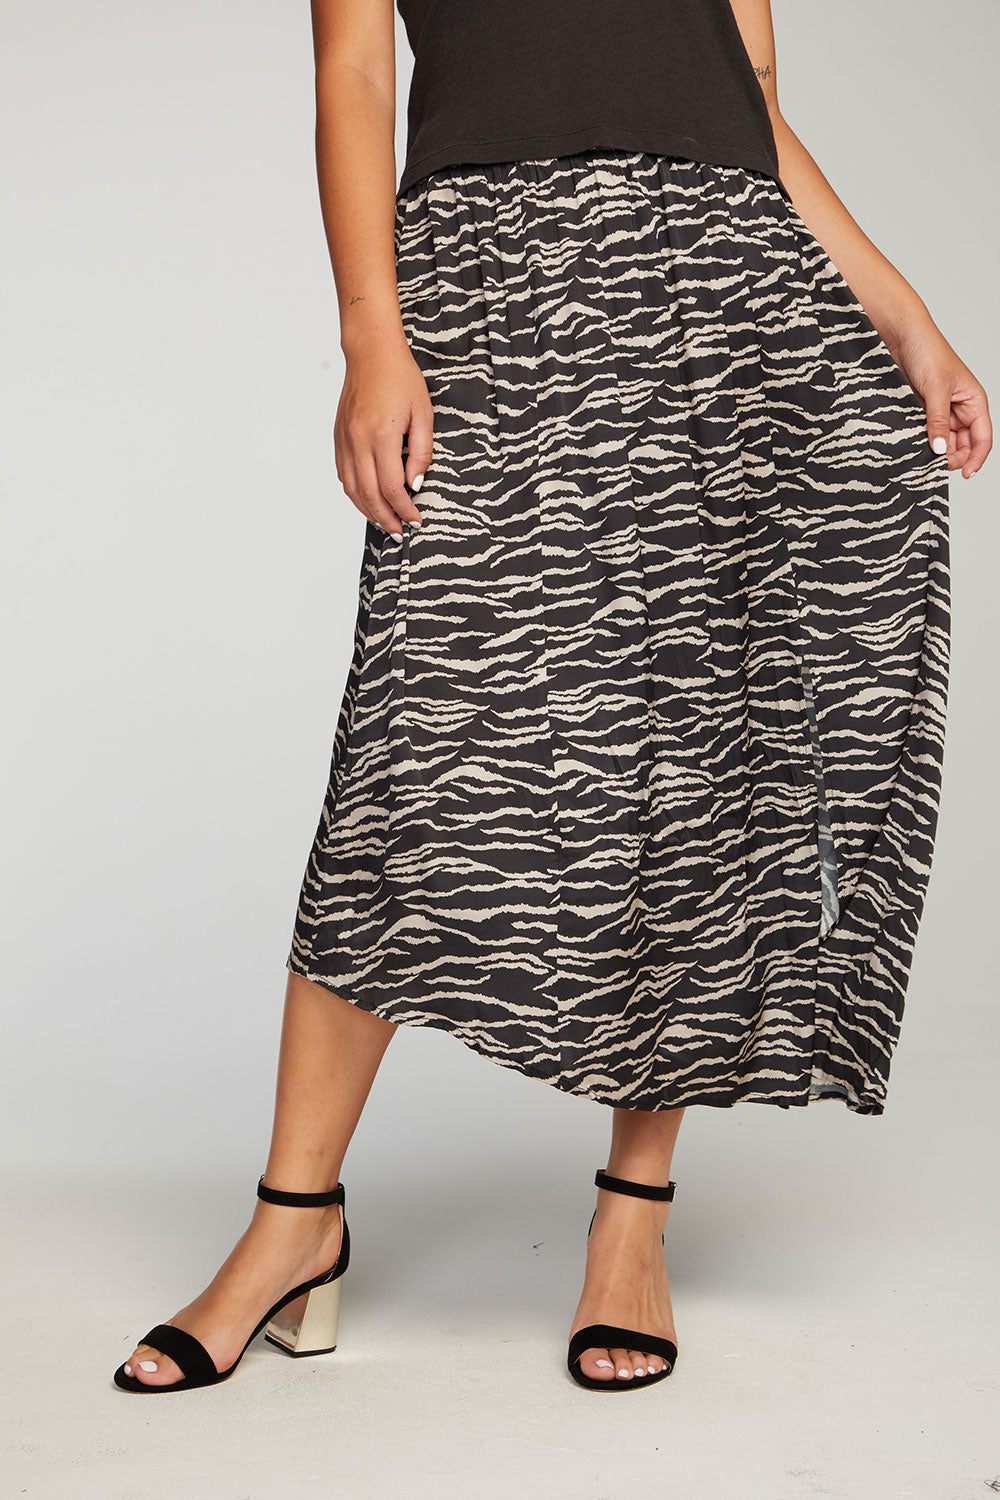 Stretch Silky Basics Asymmetrical Midi Skirt with Slit